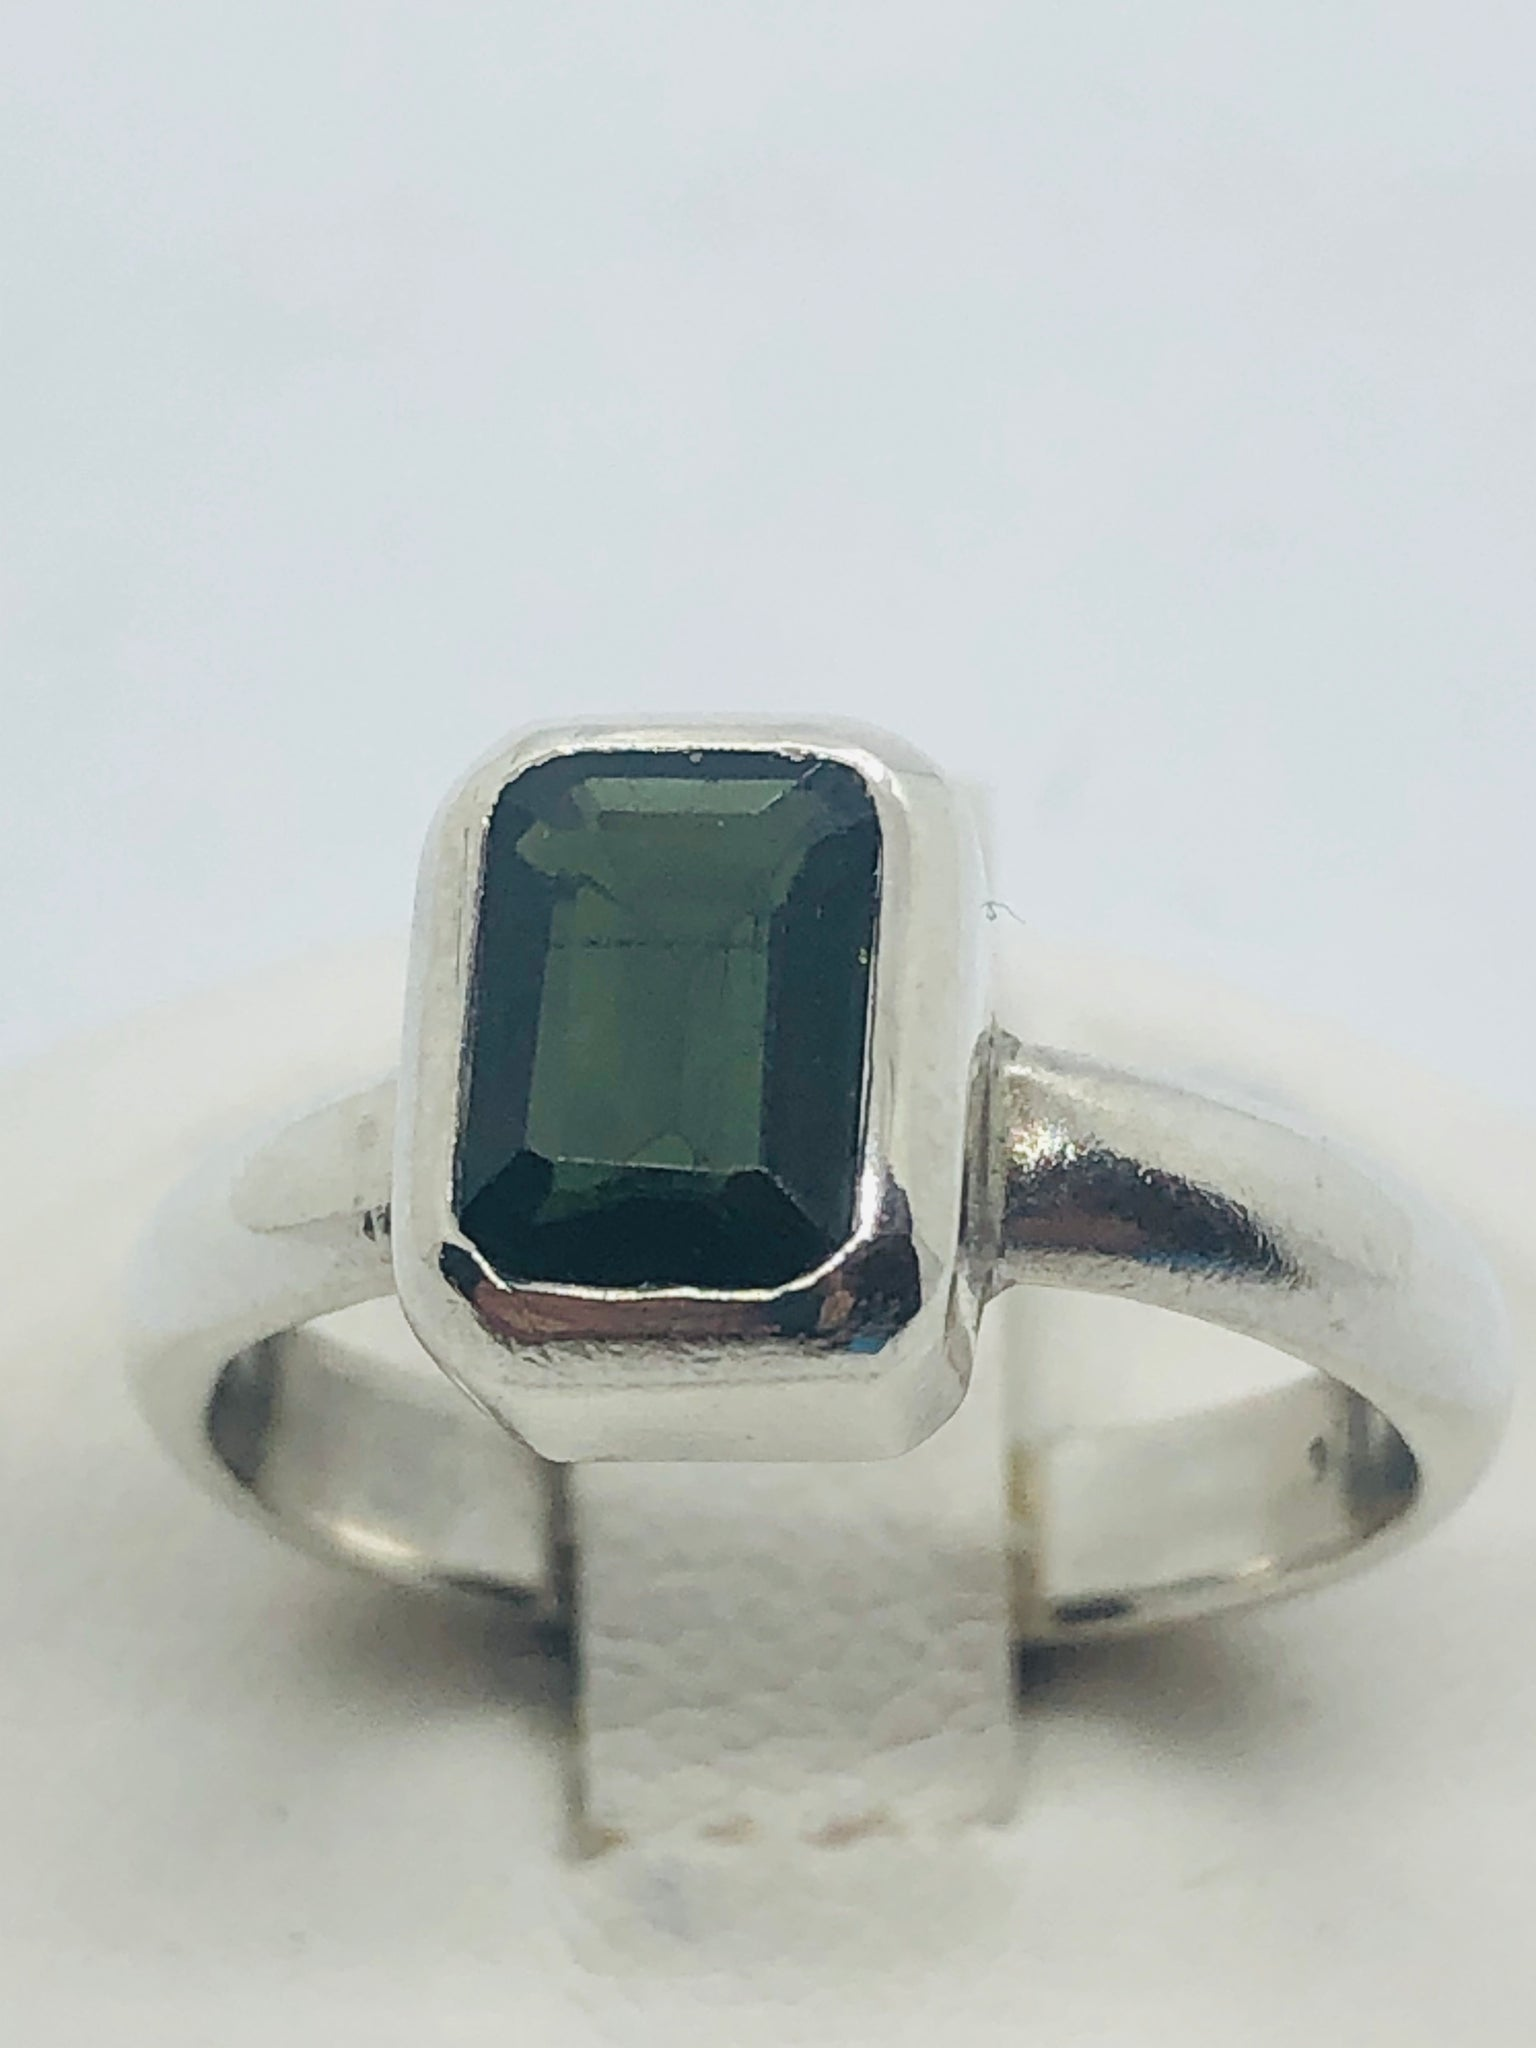 Green Tourmaline 925 Sterling Silver Ring, size 5.5